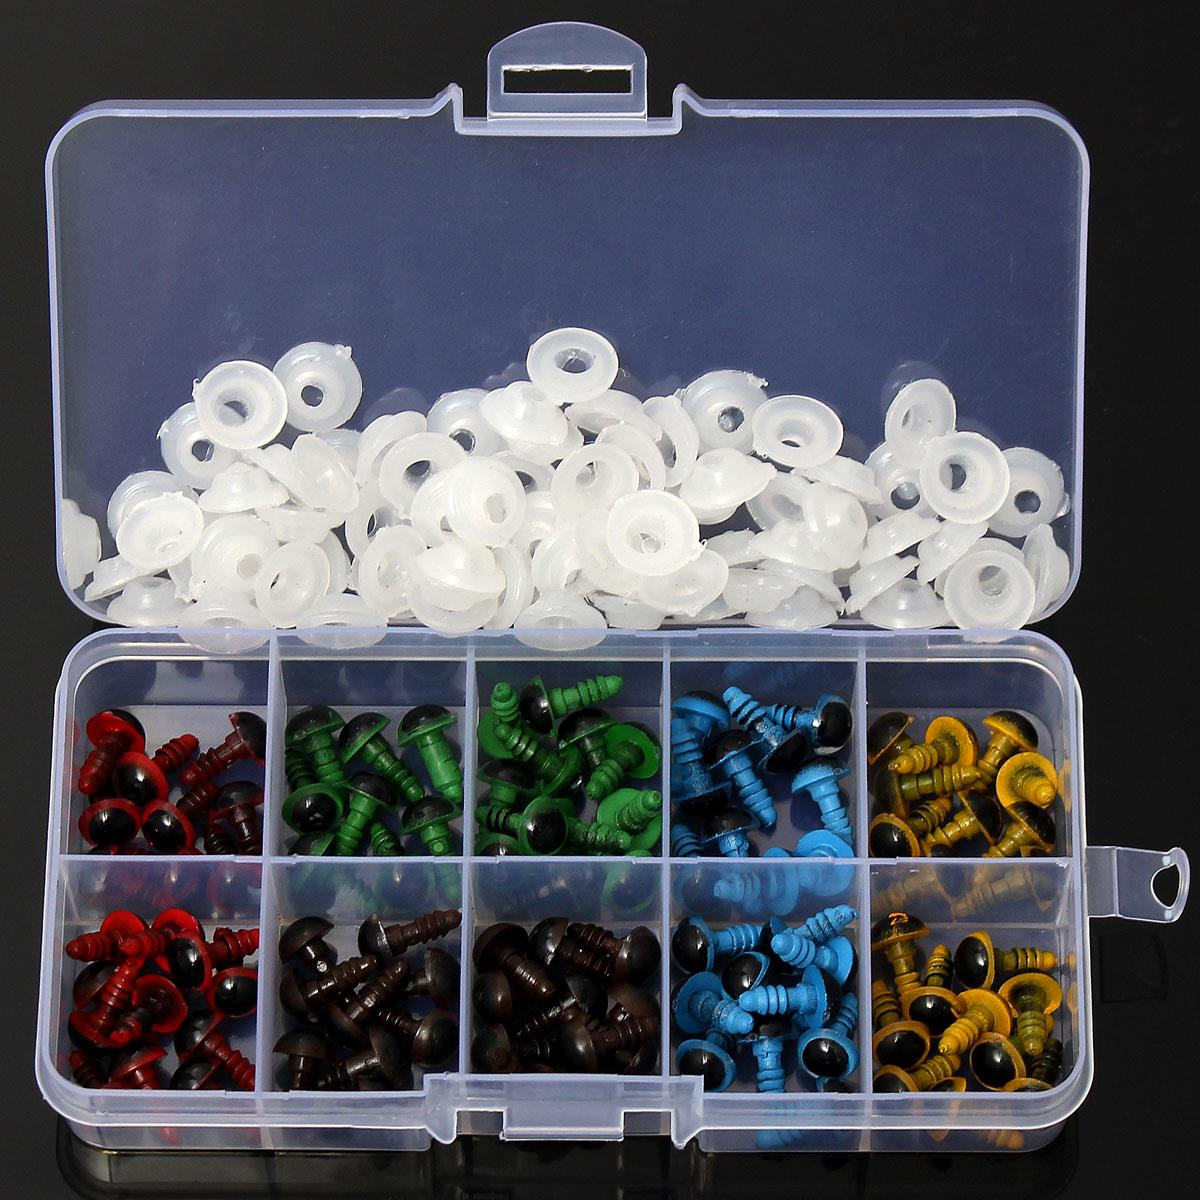 DIY Wholesale 100 Pcs/50 Pairs 5 Colors-Mix 8mm Plastic Safety Eyes Box for Teddy Bear Stuffed Toy Snap Animal Puppet Doll Craft